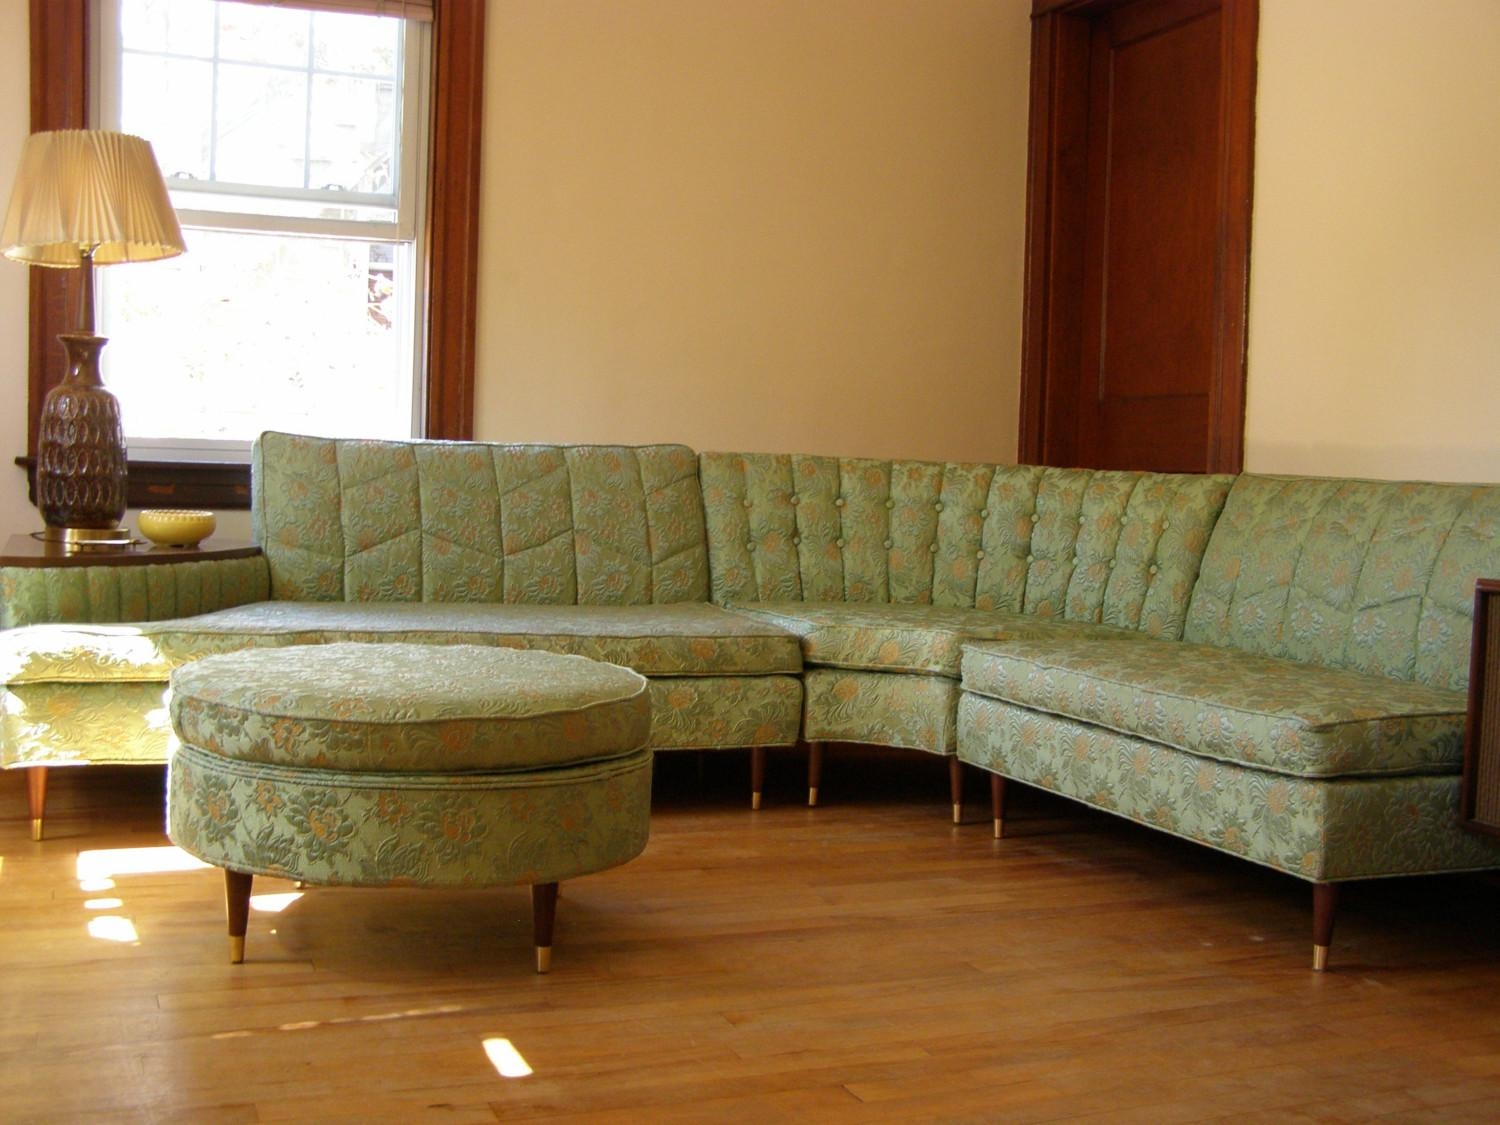 Funky Sofas For Sale 74 With Funky Sofas For Sale – Fjellkjeden For Funky Sofas For Sale (Image 4 of 20)